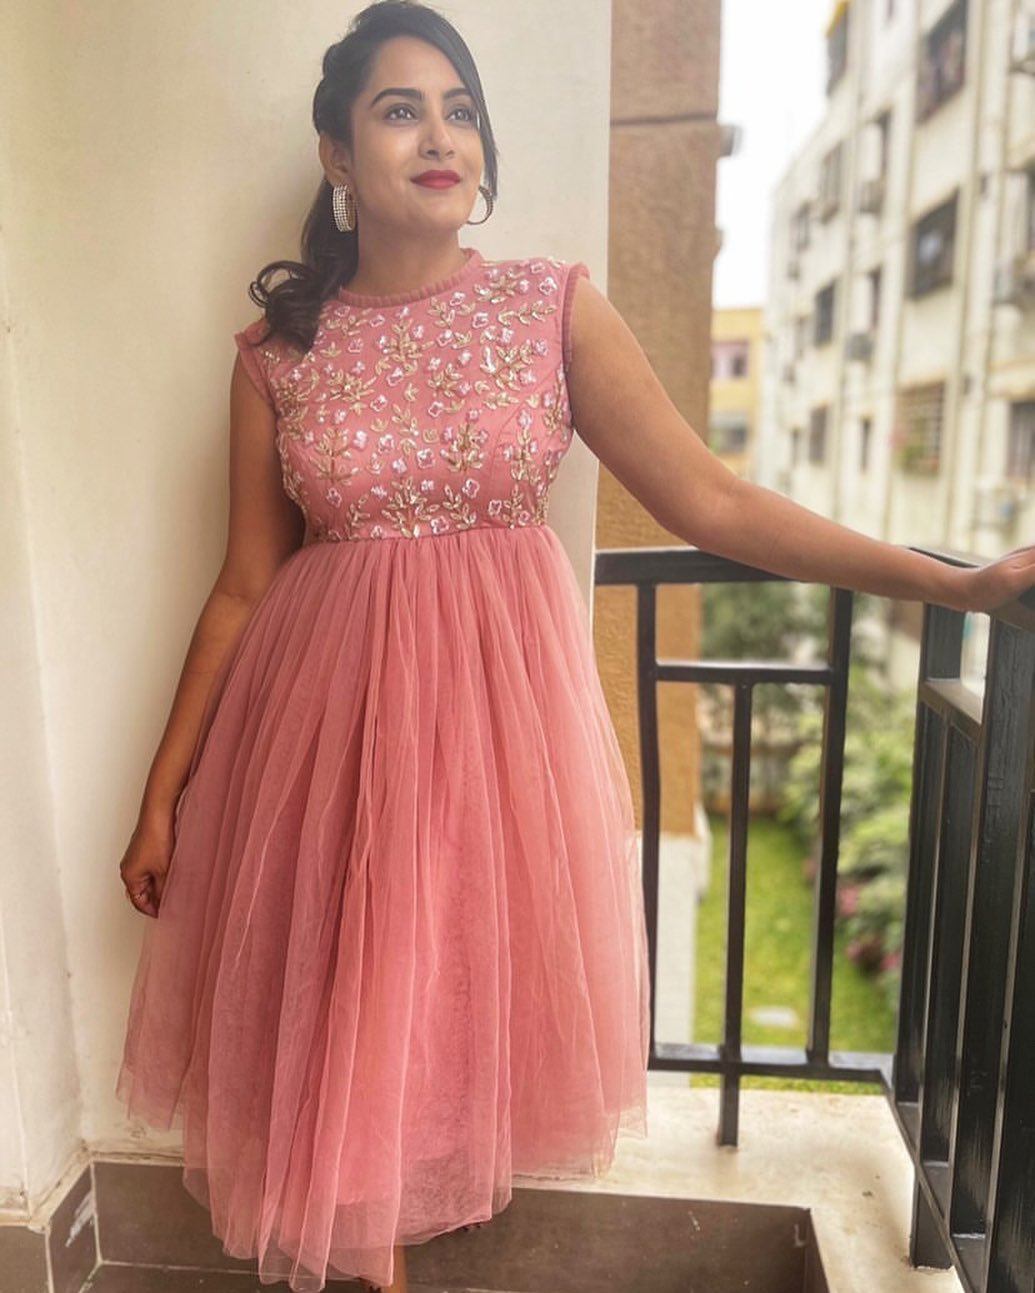 Stunning actress Himaja in peach knee length dress. 2021-05-11